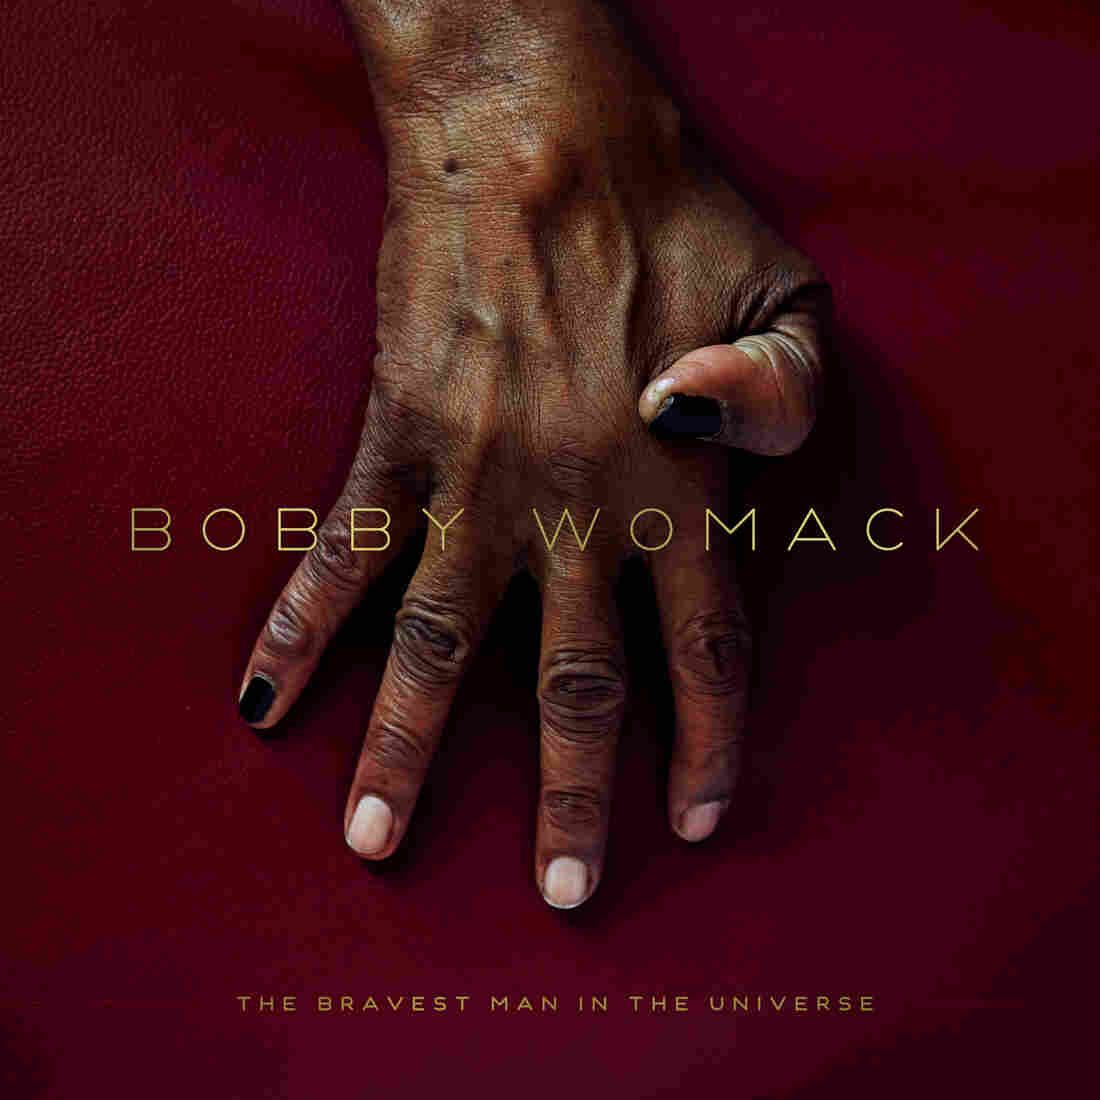 The cover for Bobby Womack's album The Bravest Man In The Universe.